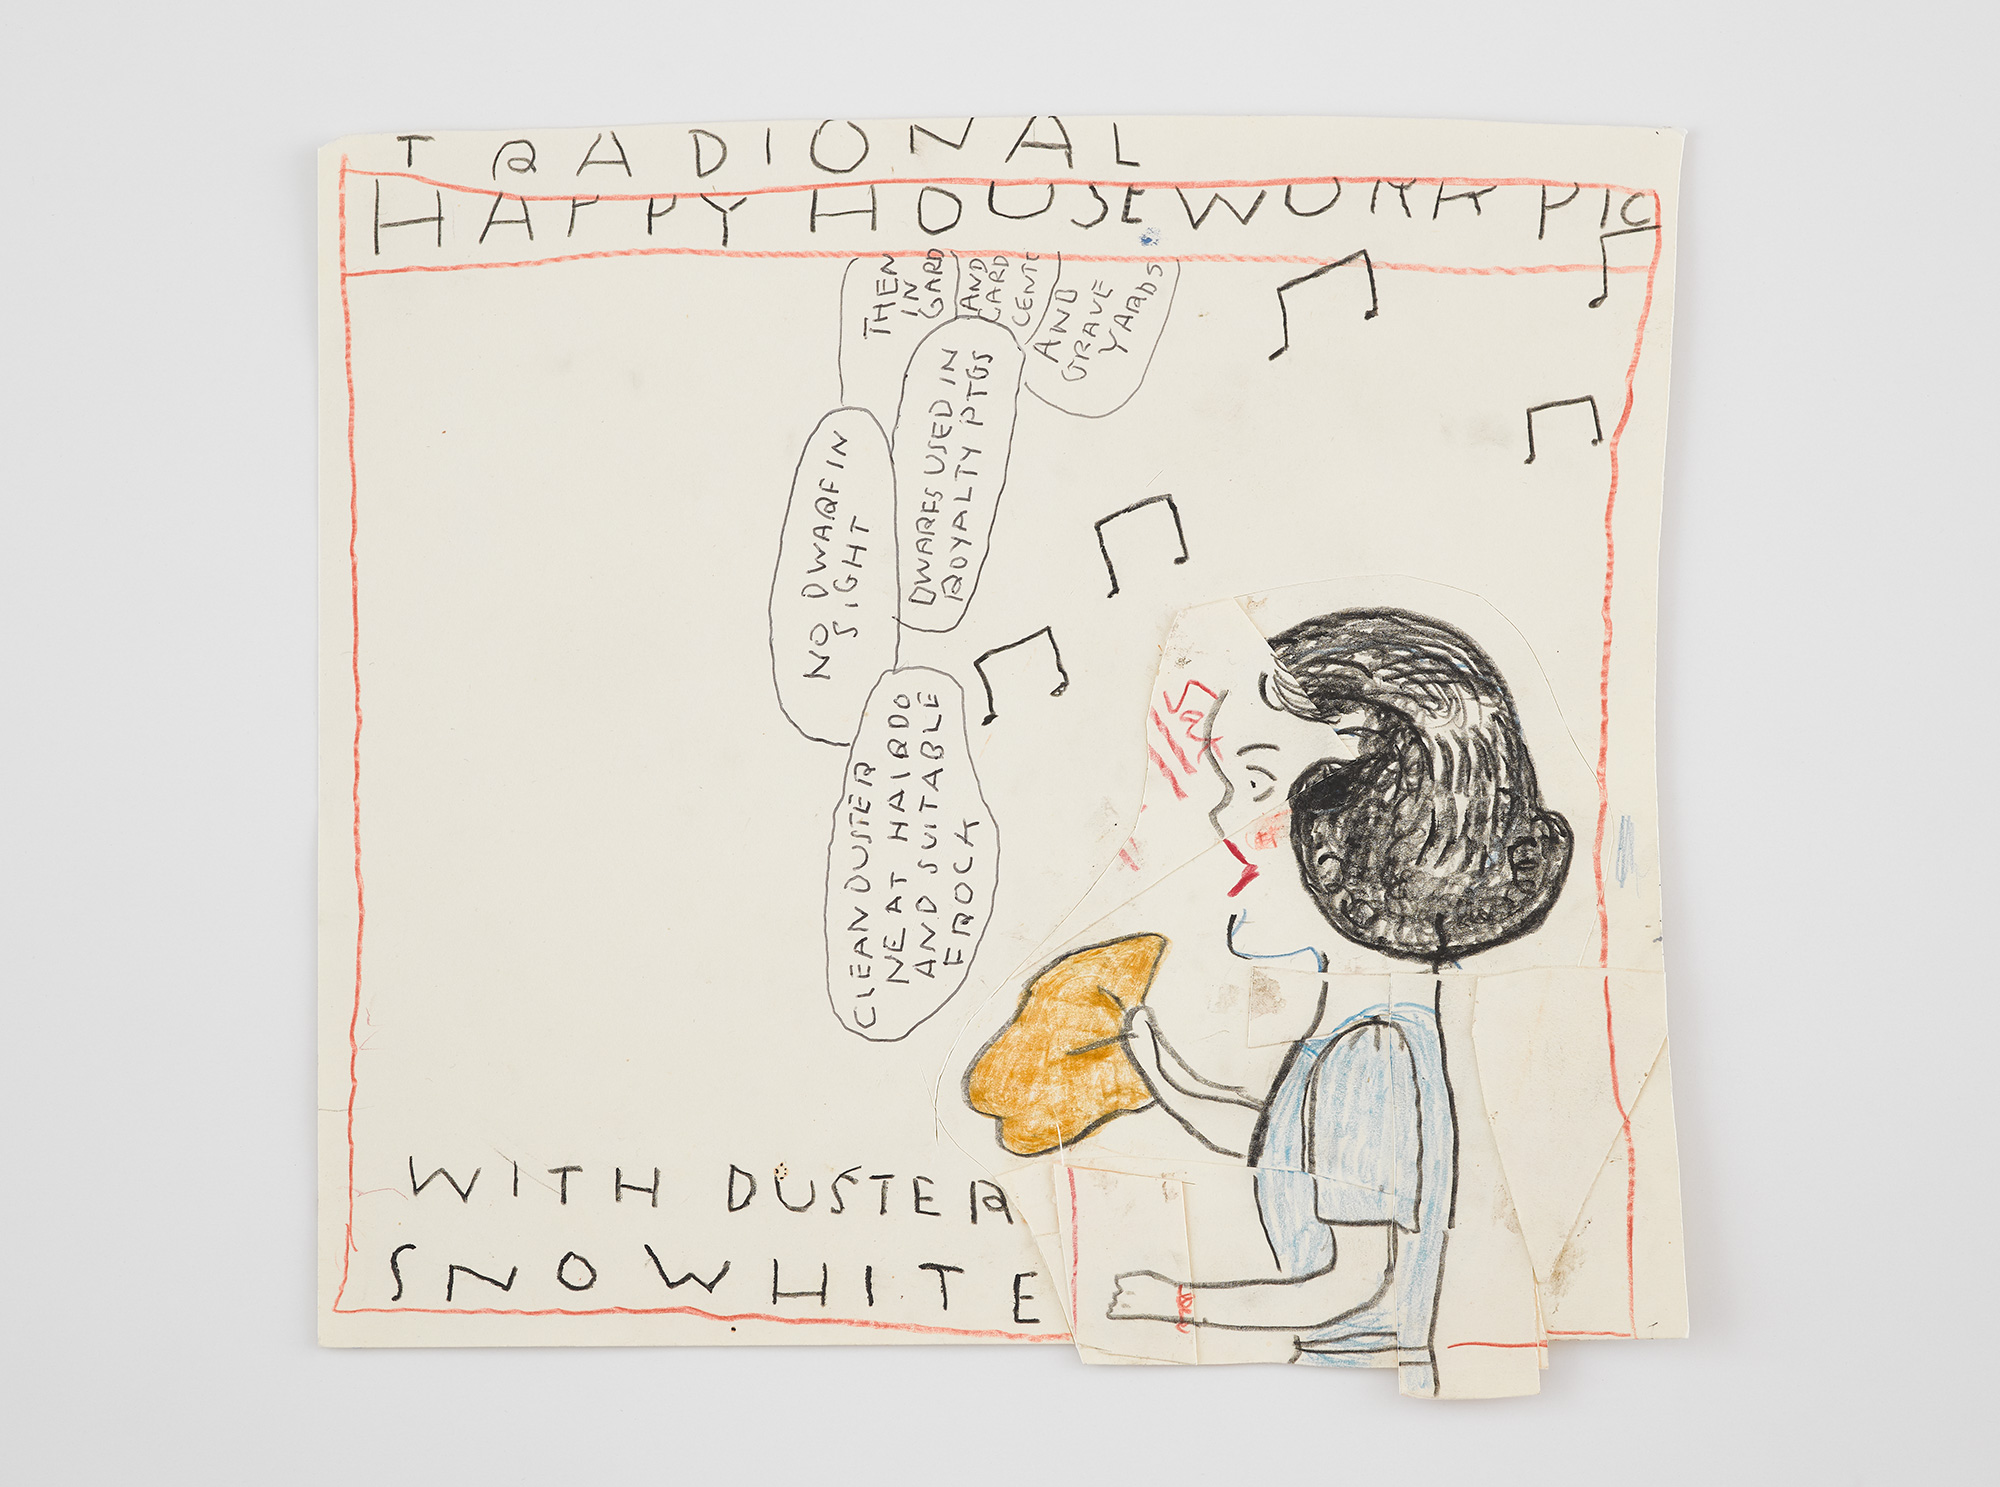 Snow White with Duster, 2019, courtesy of the artist and David Zwirner